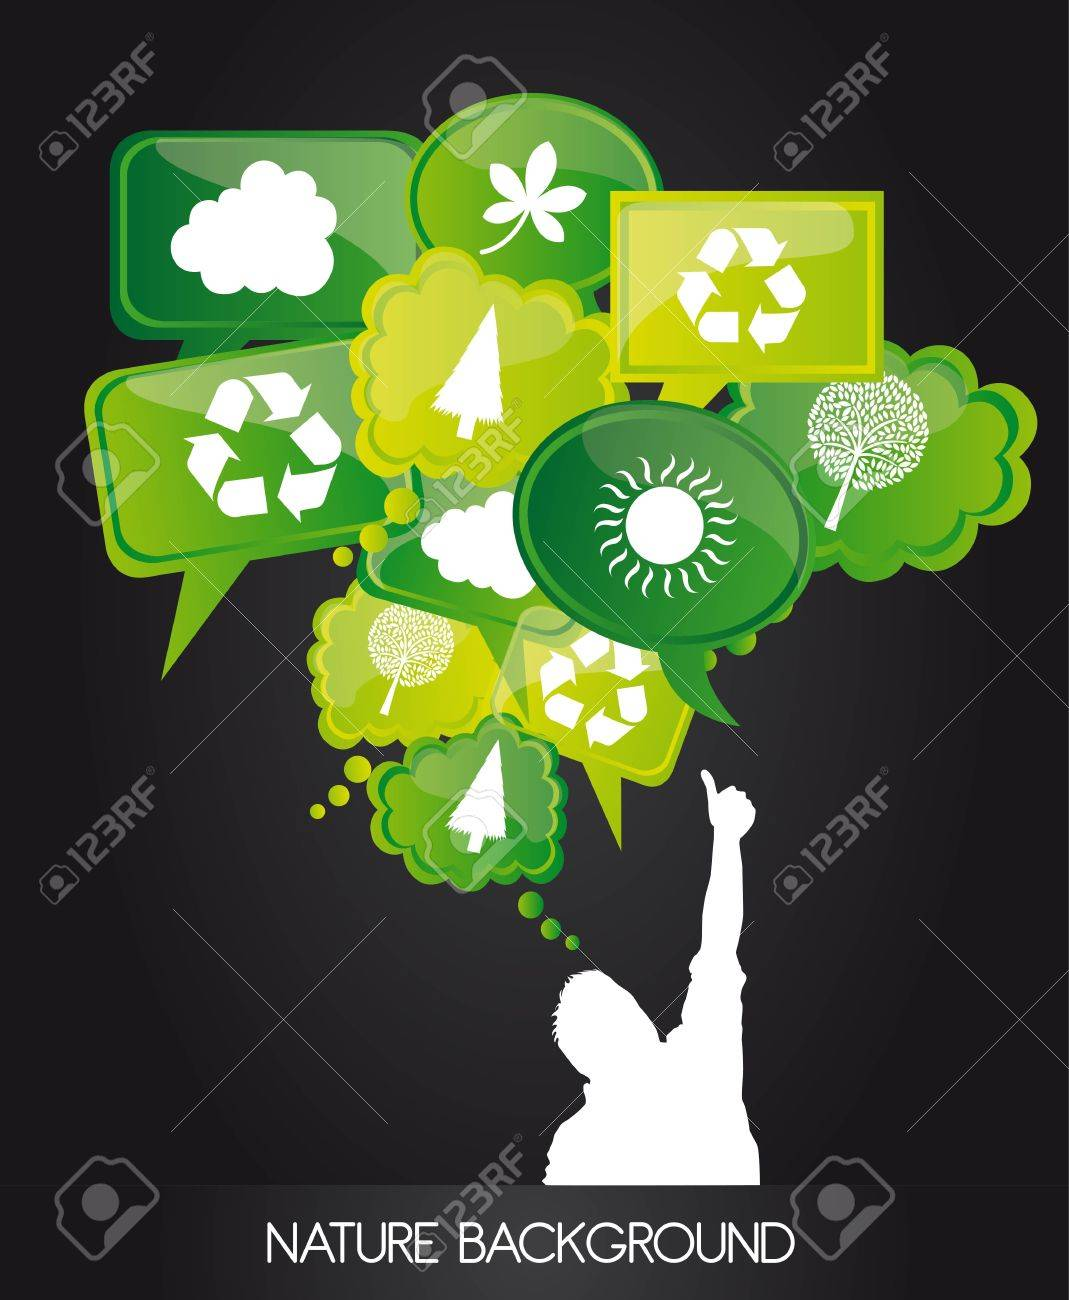 Nature icons on bubbles over black background Stock Vector - 12337712